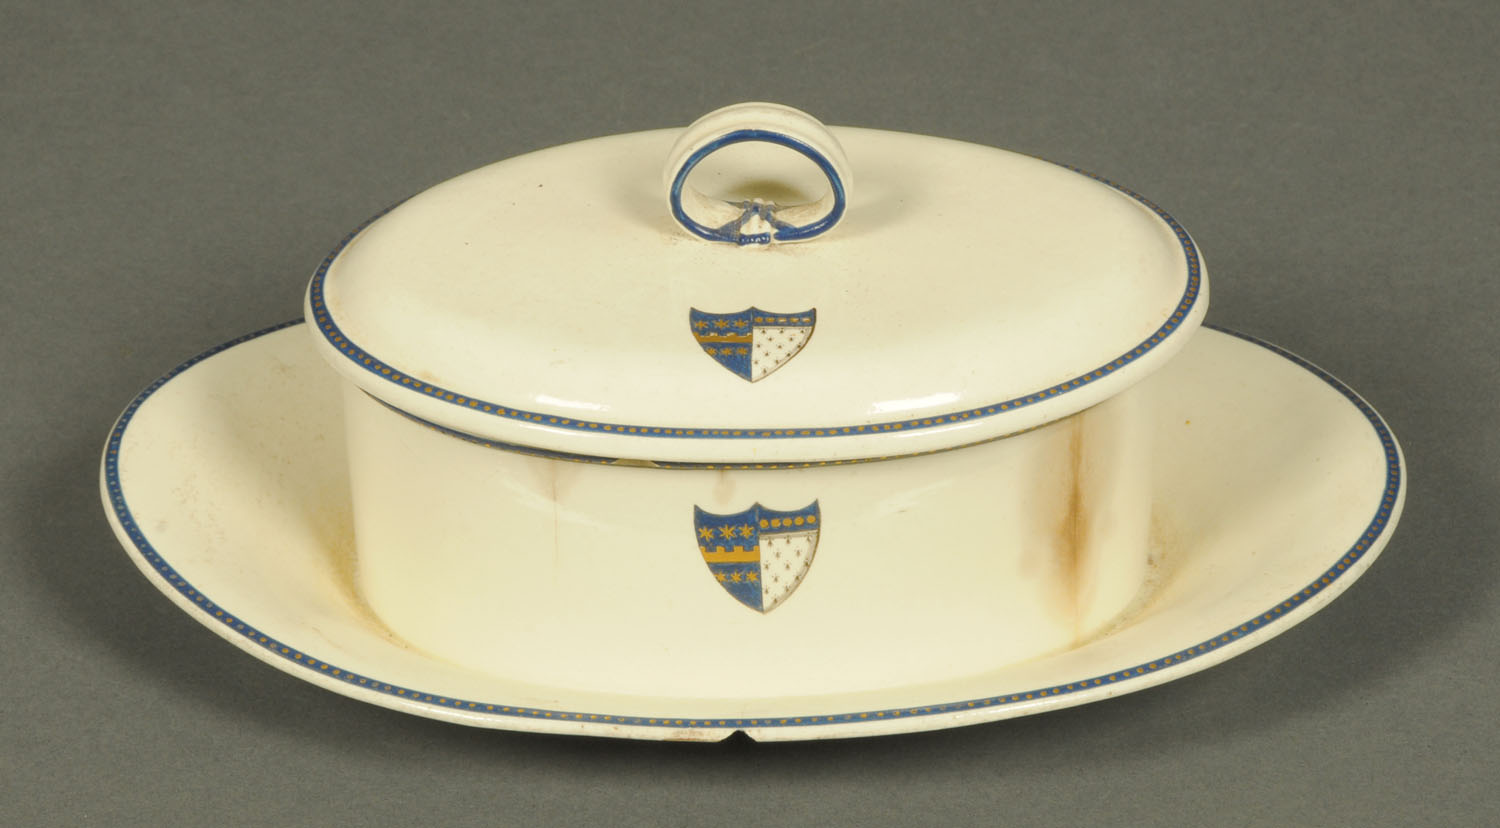 Lot 19 - A Wedgwood creamware butter dish and cover, decorated with an armorial shield. Length 22 cm.